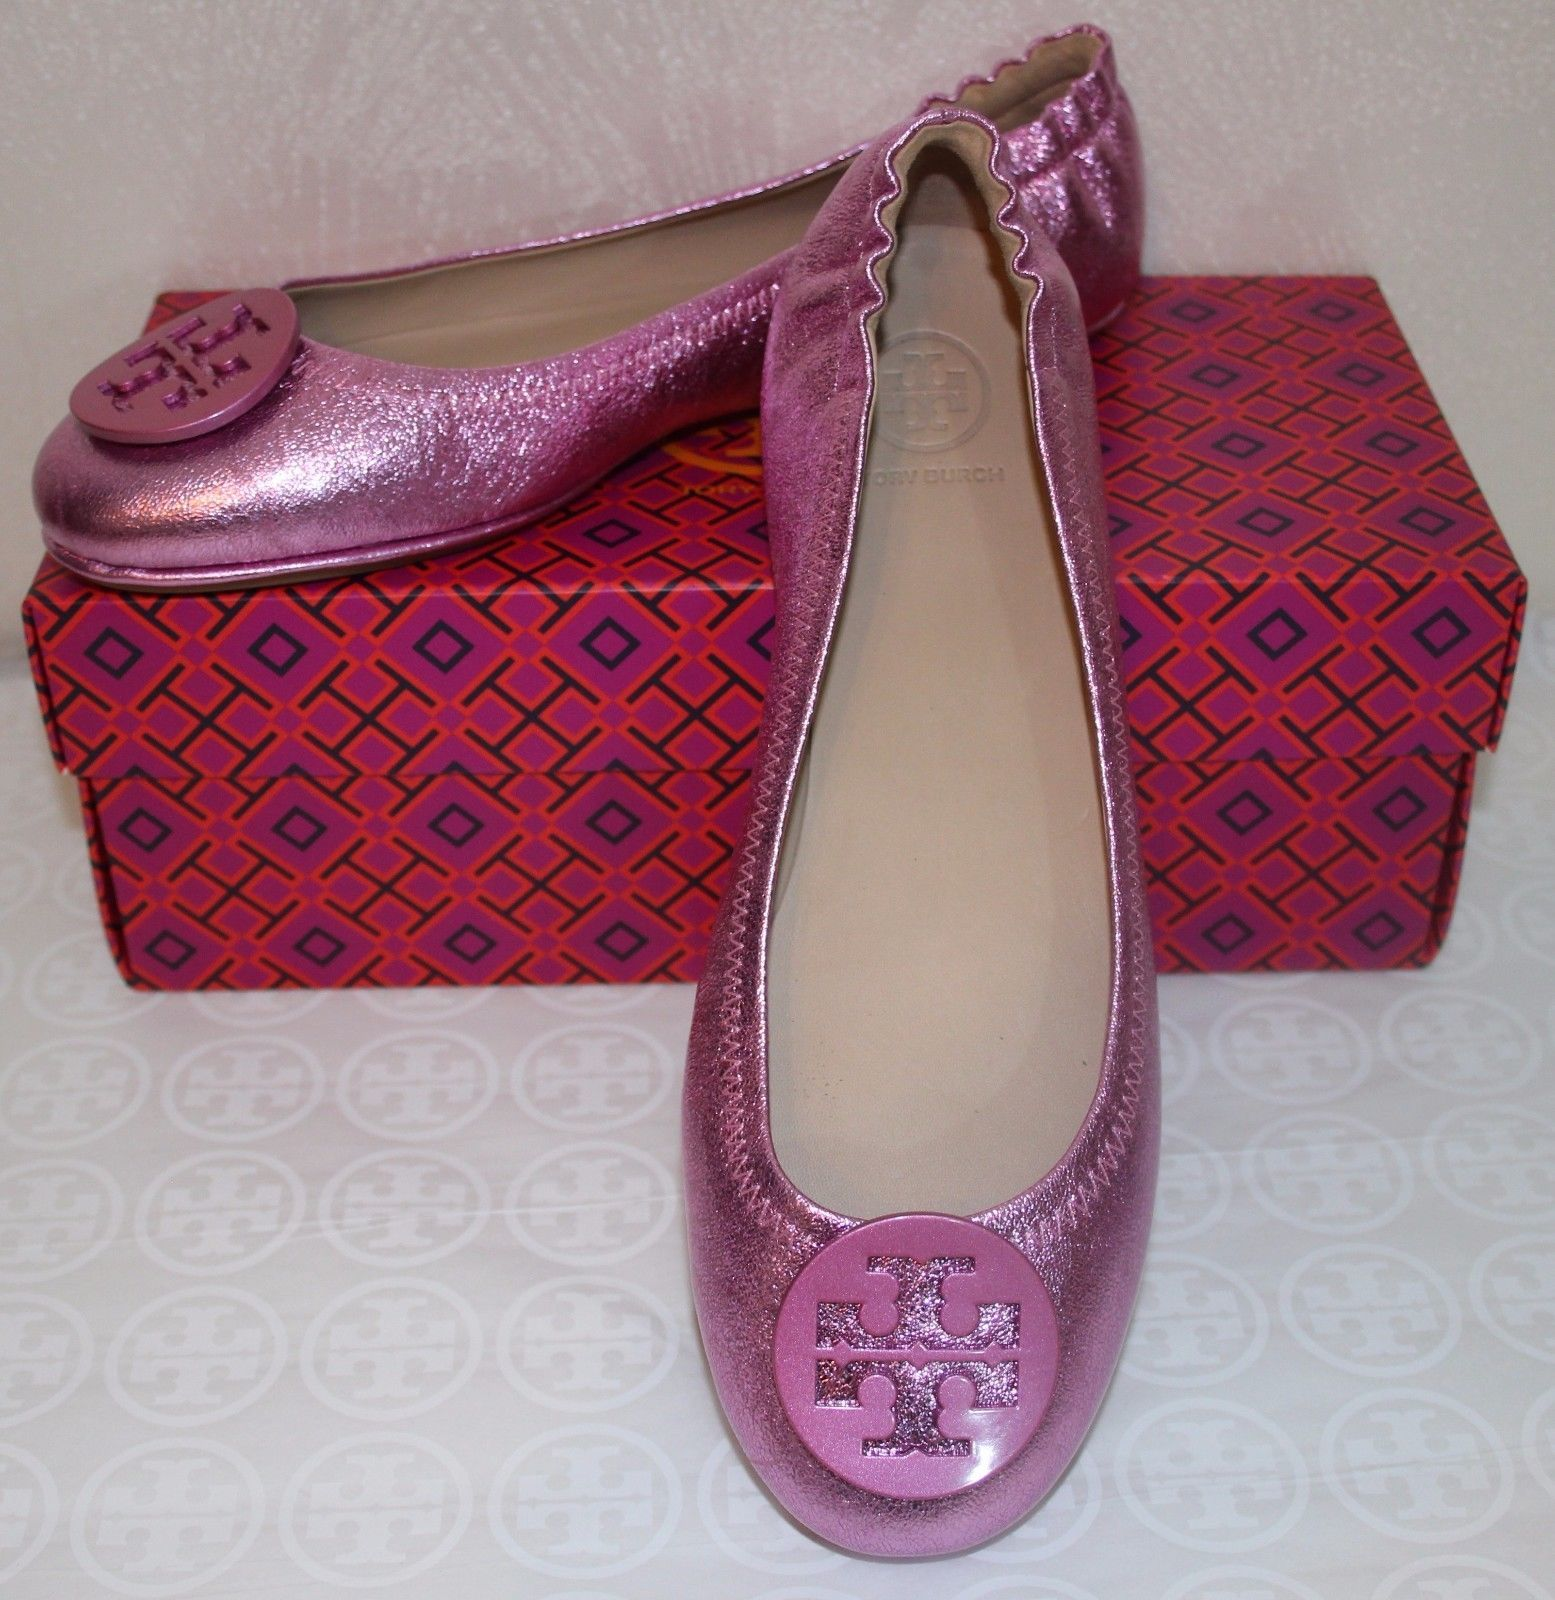 7a3ea010ff8 S l1600. S l1600. Previous. Tory Burch Minnie Travel Ballet Flat Size 7  Shoes Flats Pink Metallic Leather